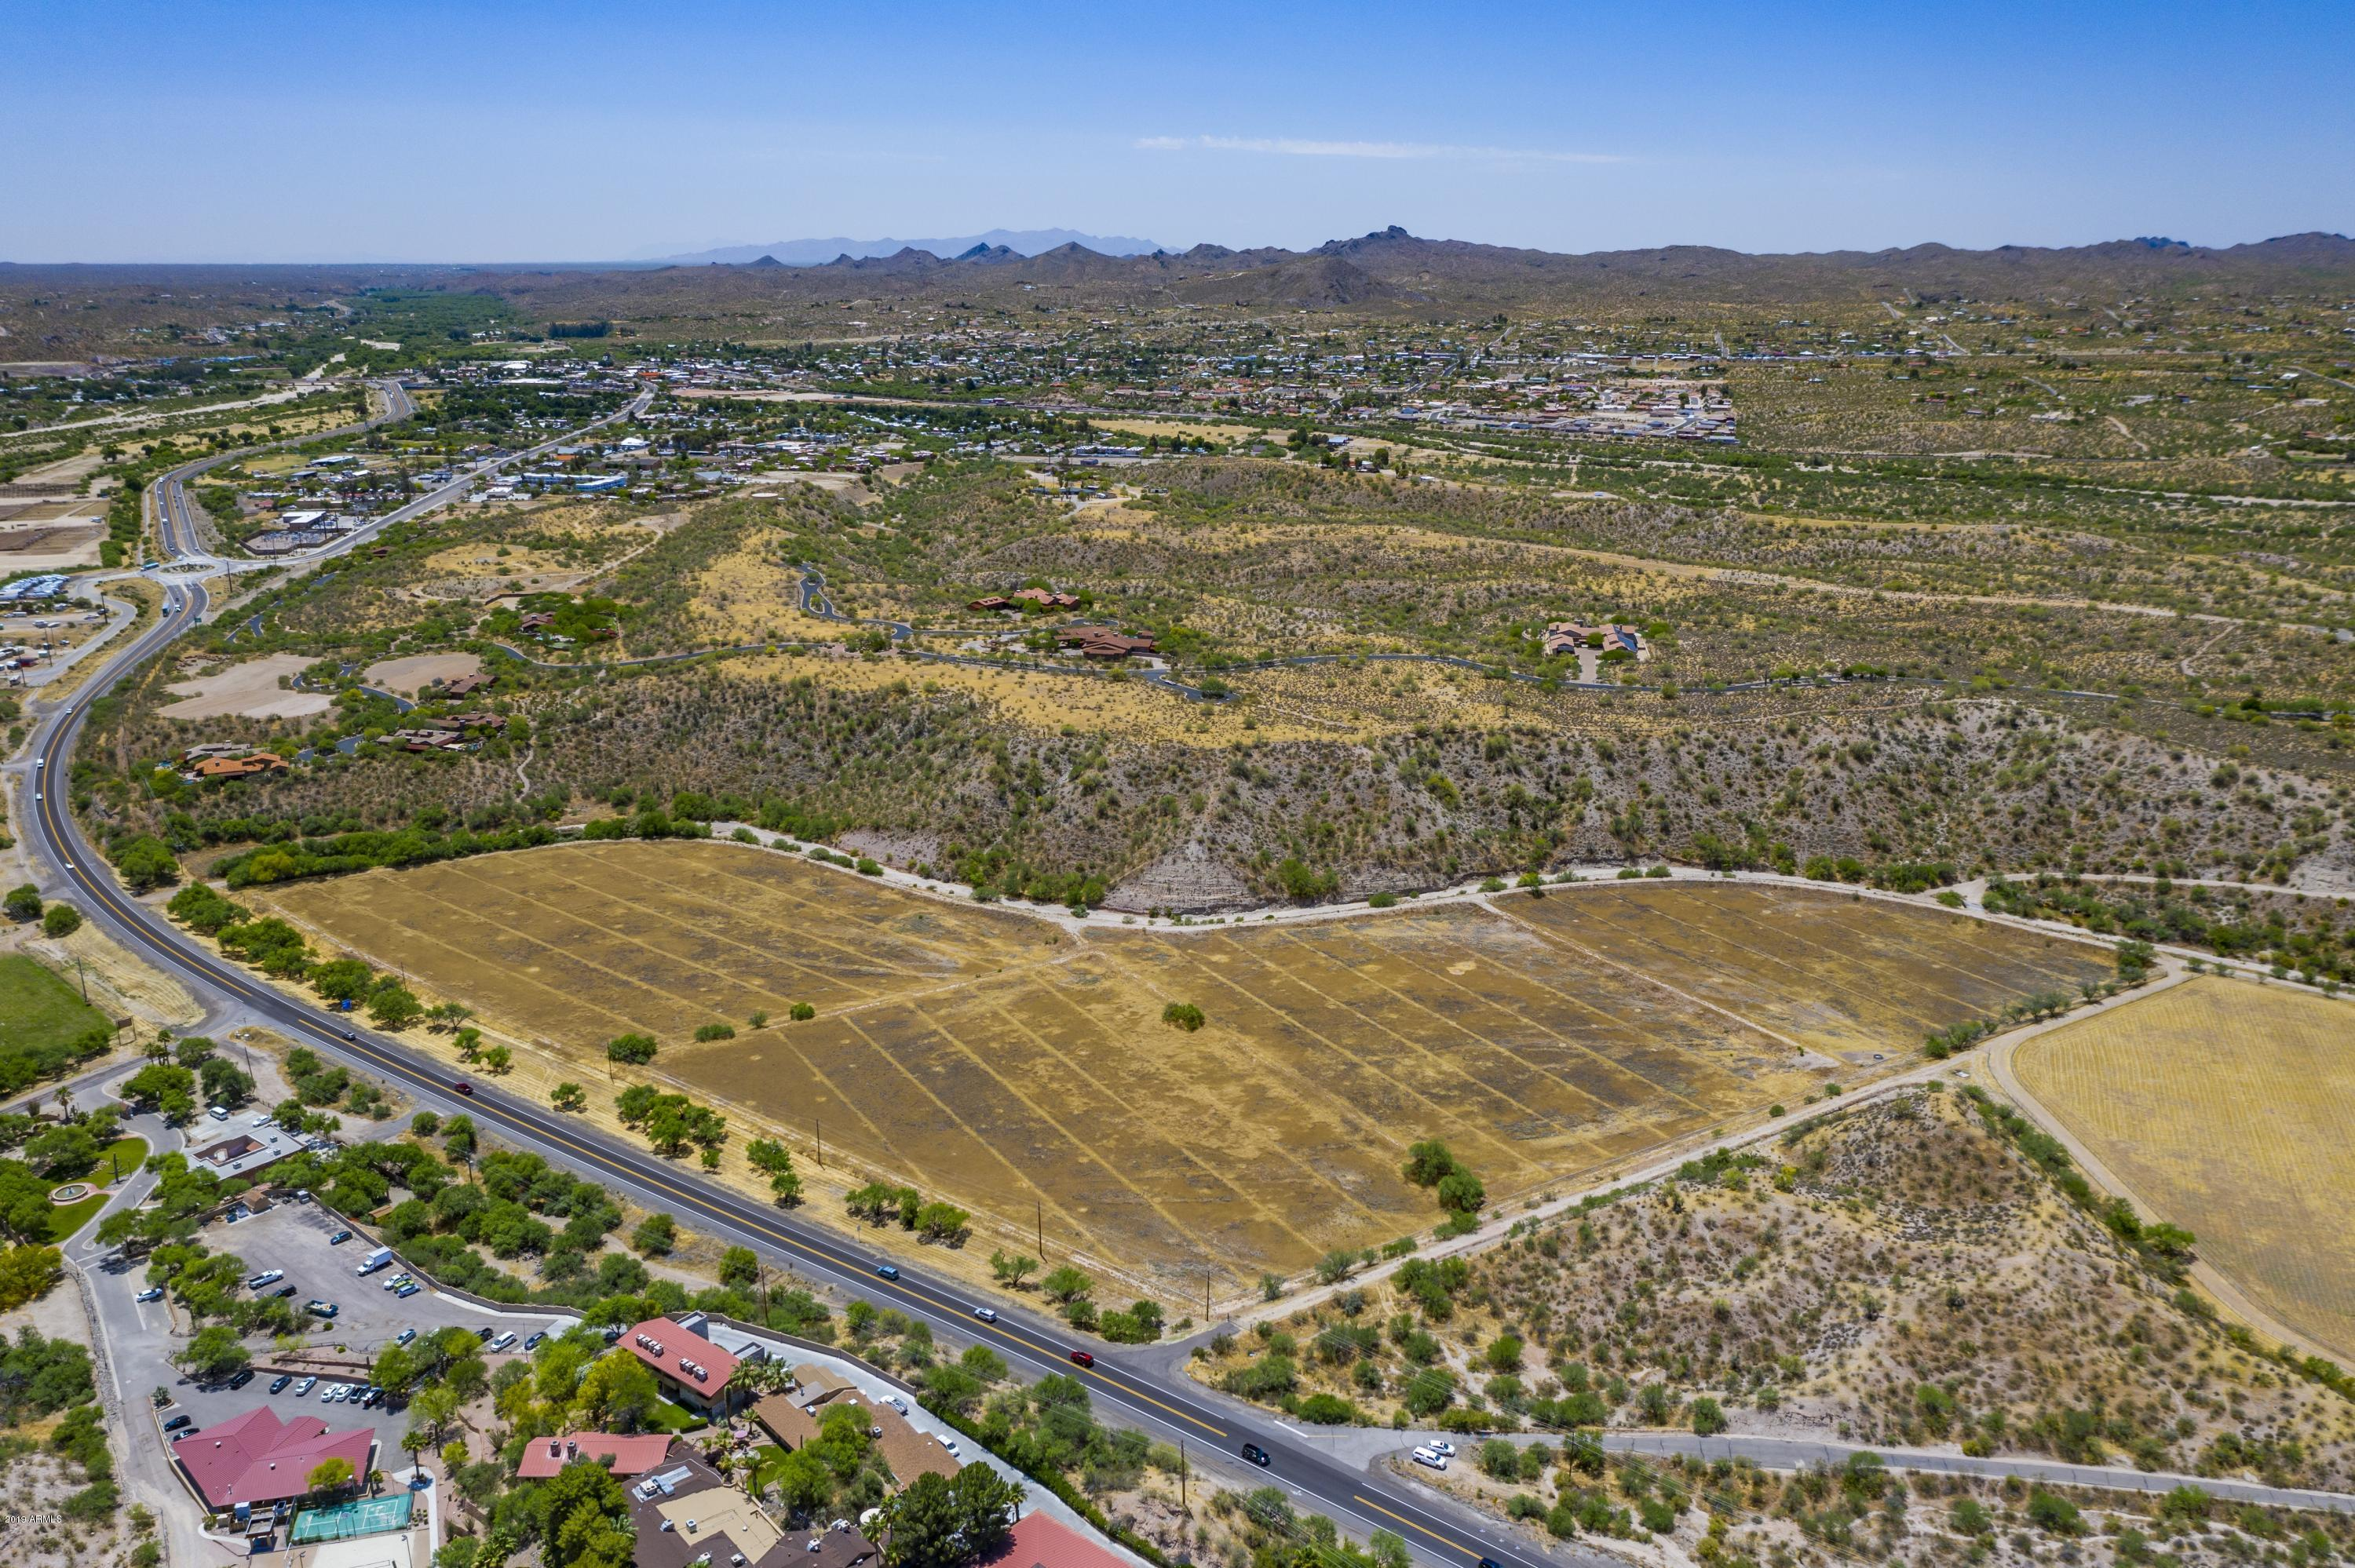 0 S US Hwy 93 (at Rincon Road) Highway, Wickenburg, Arizona 85390, ,Land,For Sale,0 S US Hwy 93 (at Rincon Road) Highway,5943121